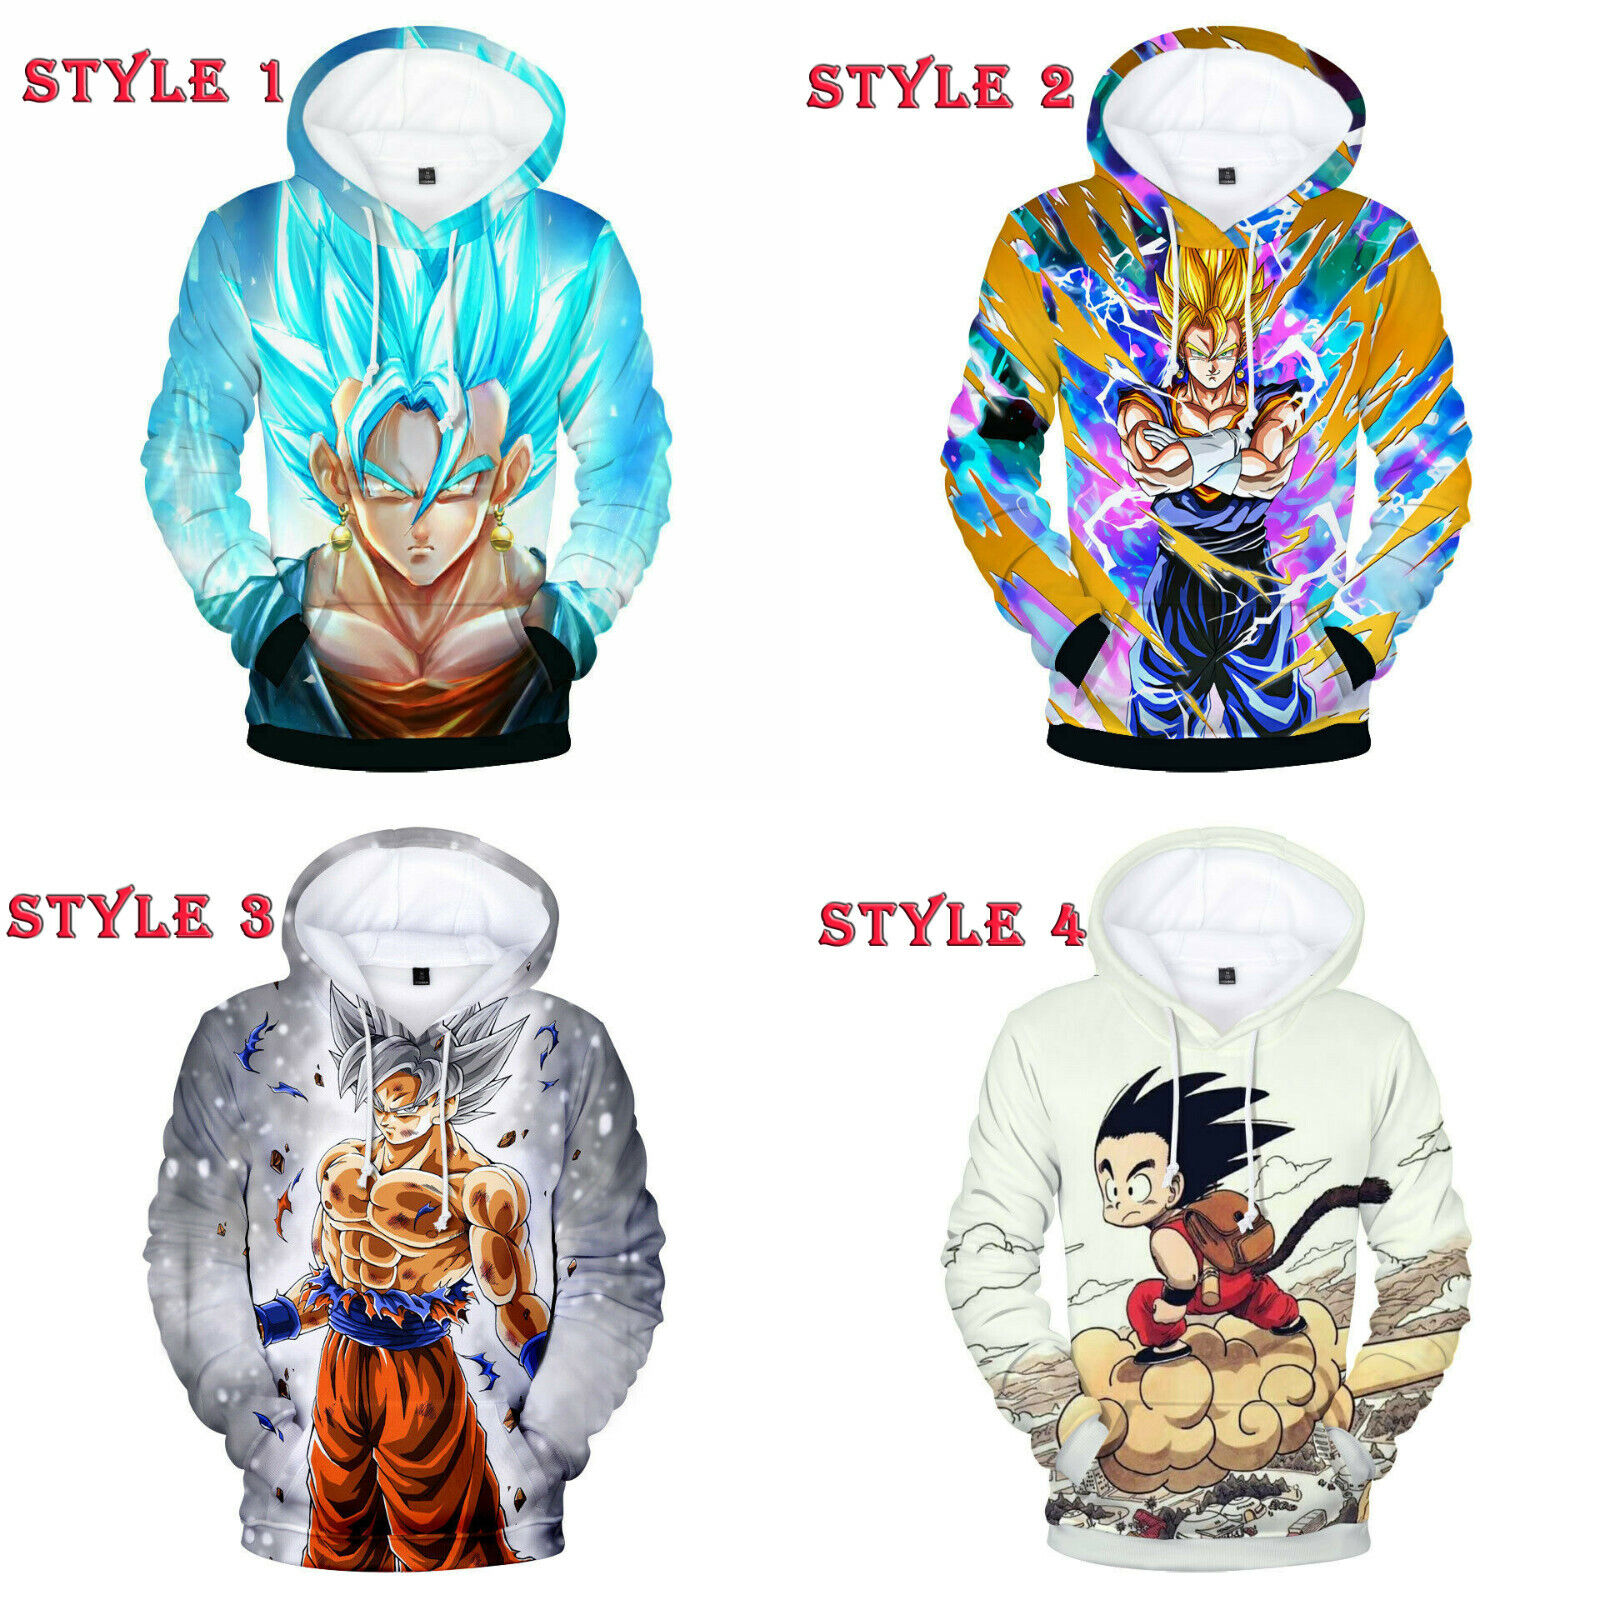 Dragon Ball Super Saiyan God Son Goku Hoodie Sweater Sweatshirt Pullover Jacket Activewear